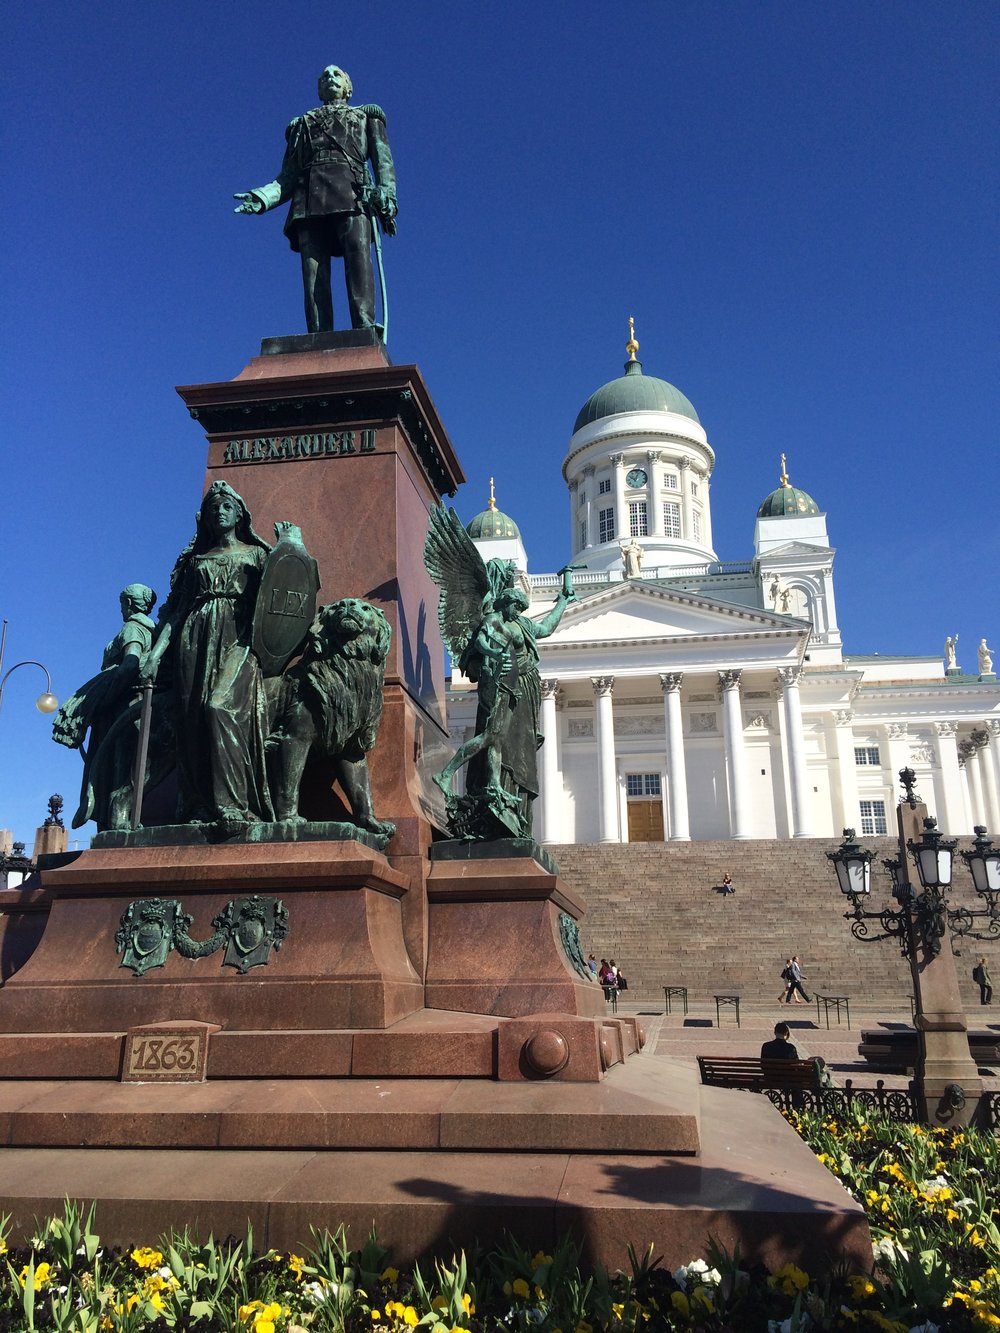 Monument of Russian tsar Alexander II in Senate Square in Helsinki.